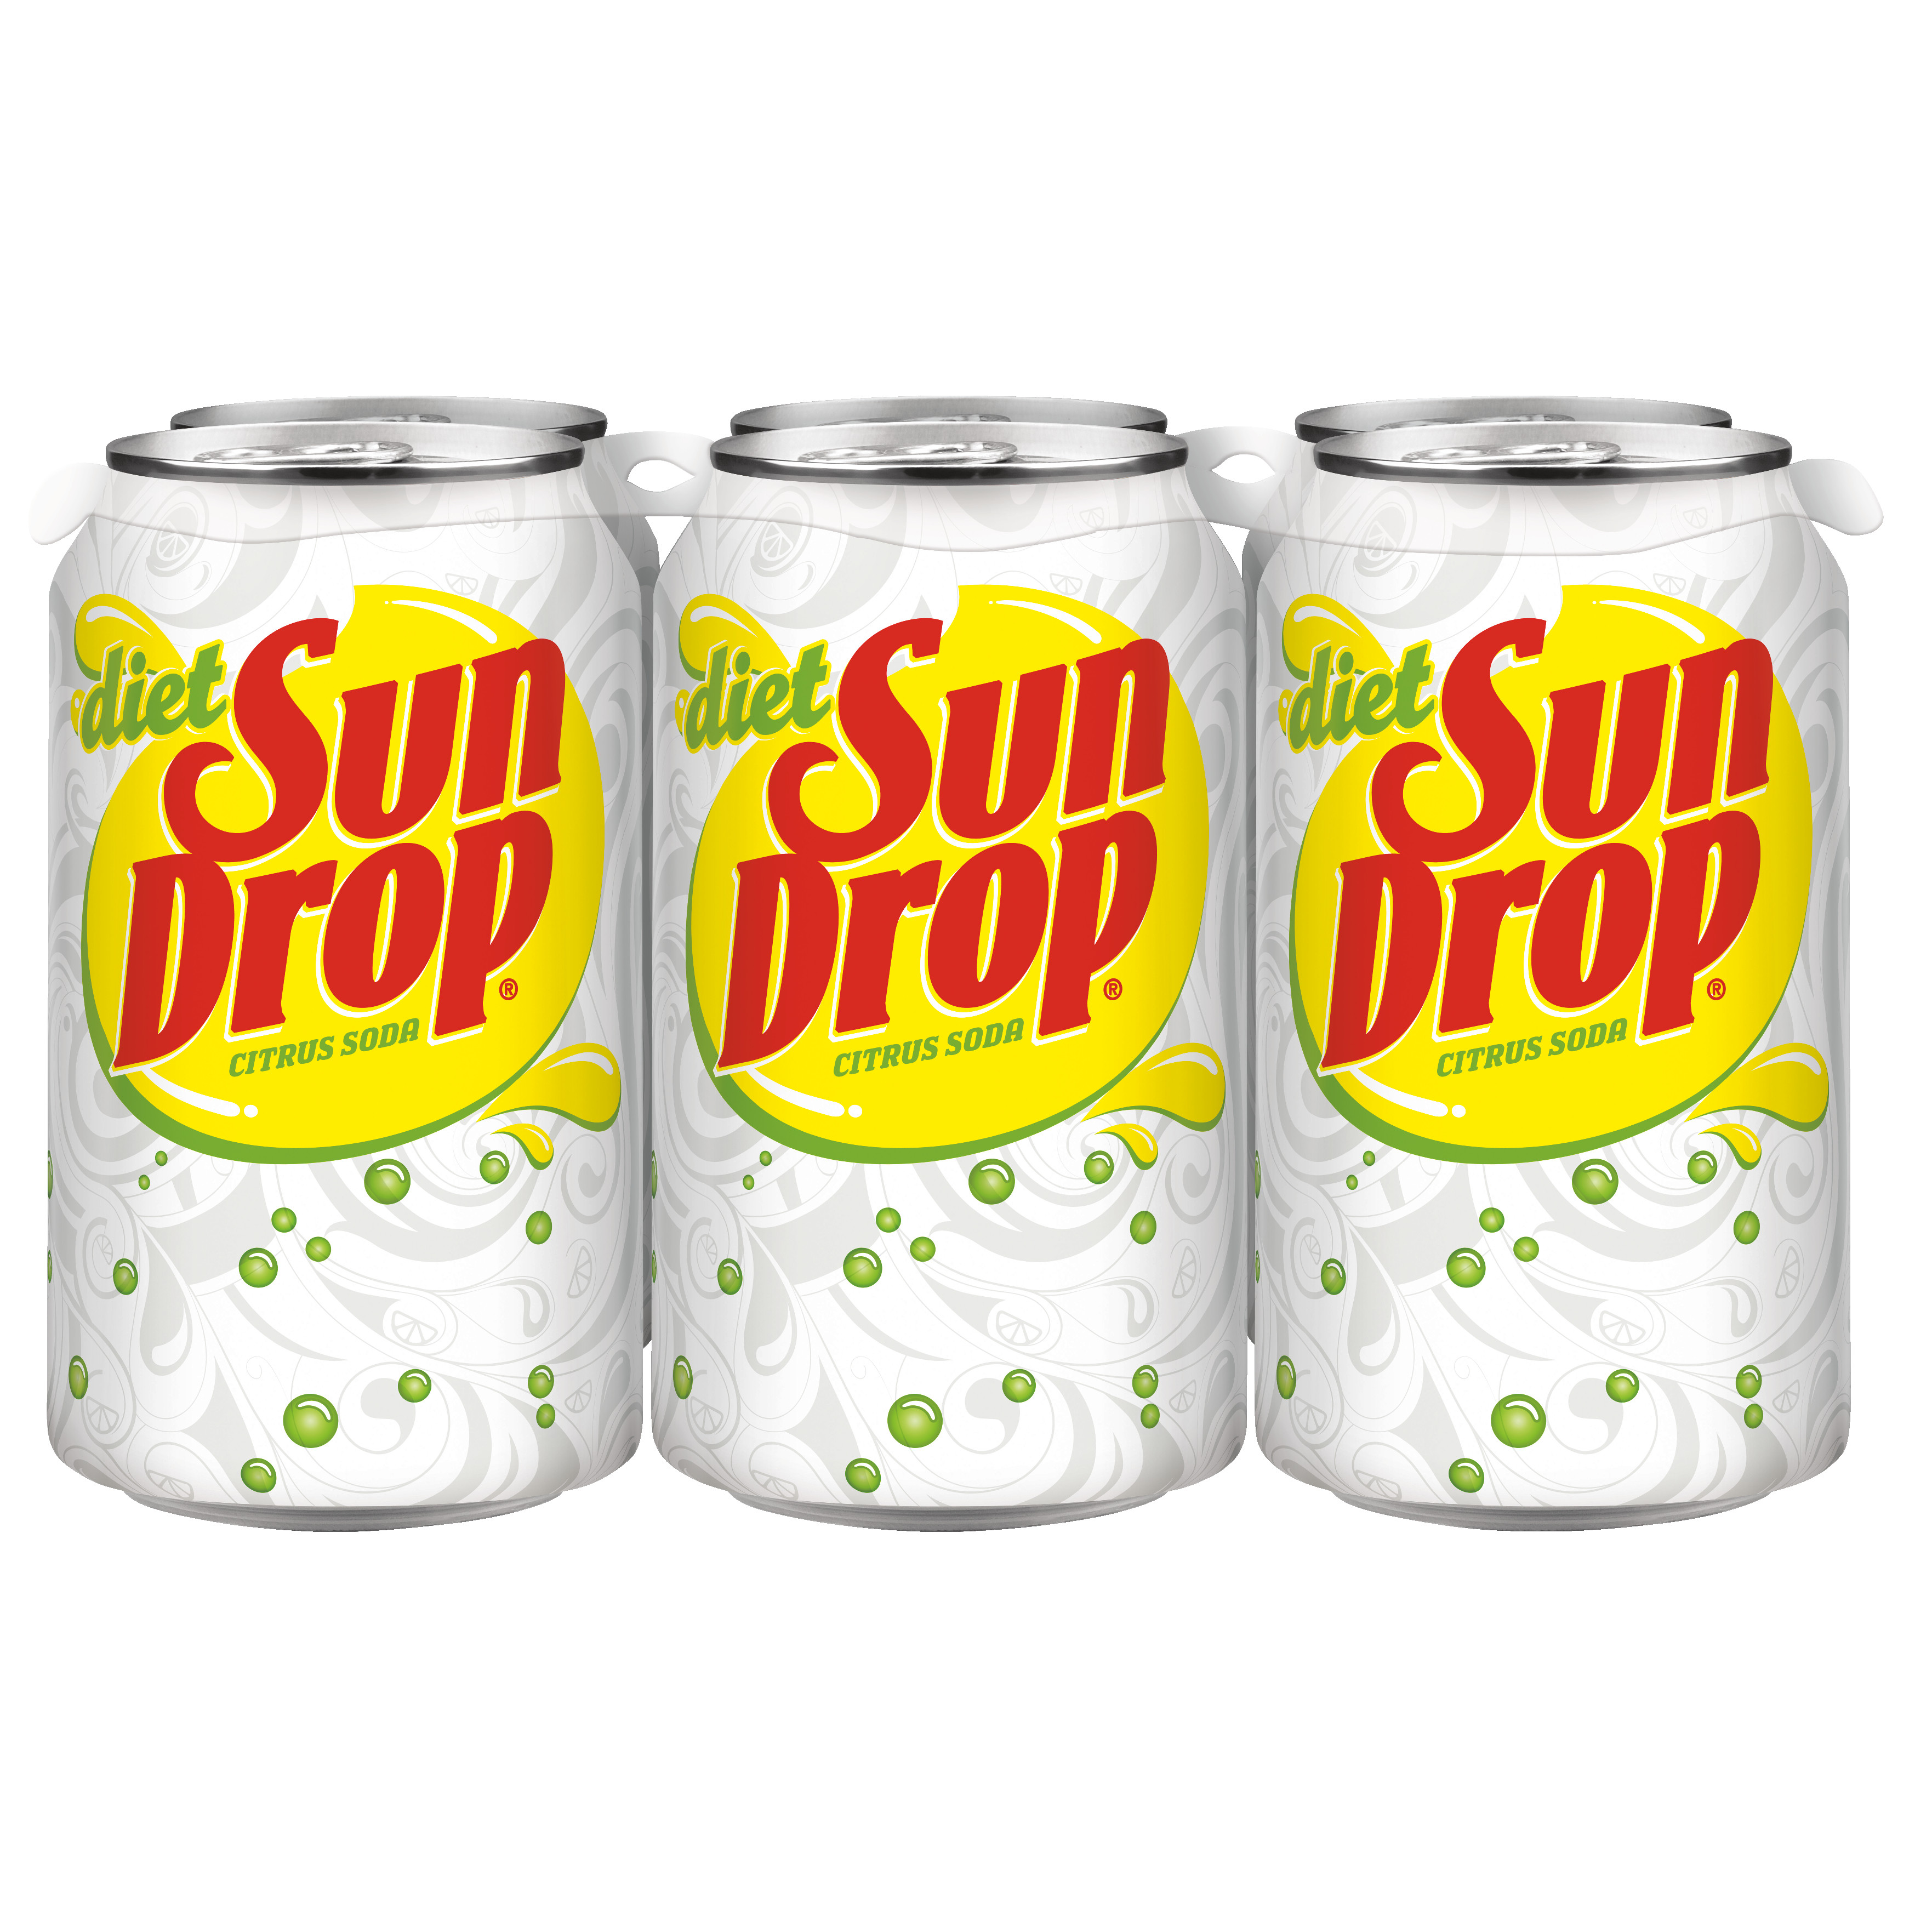 Diet Sun Drop, 12 fl oz, 6 pack